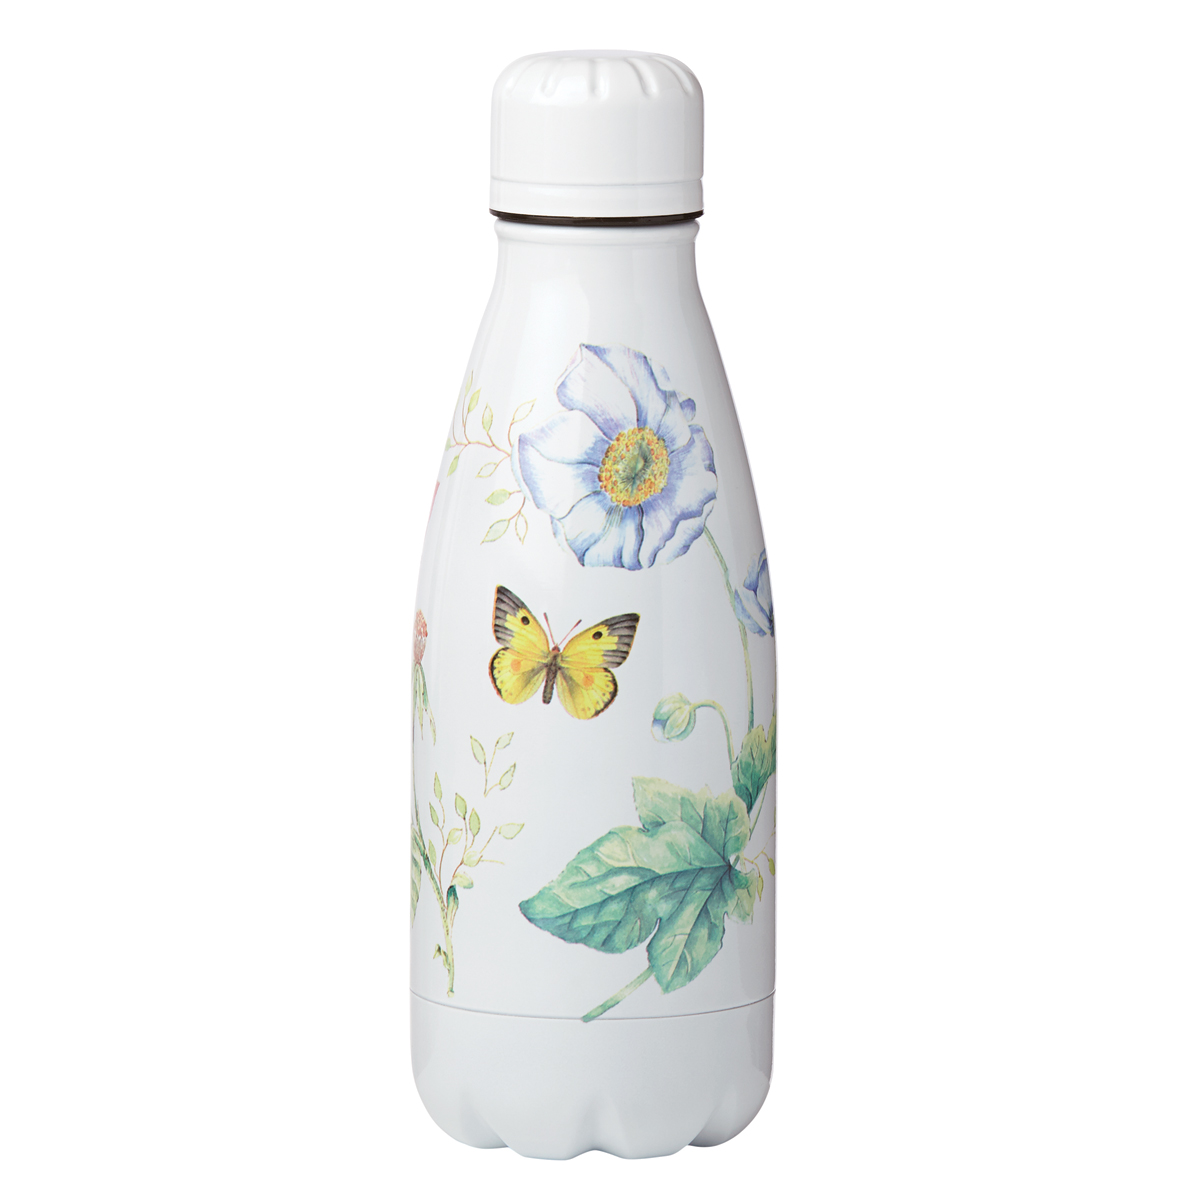 Lenox Butterfly Meadow Dinnerware Cold Water Bottle